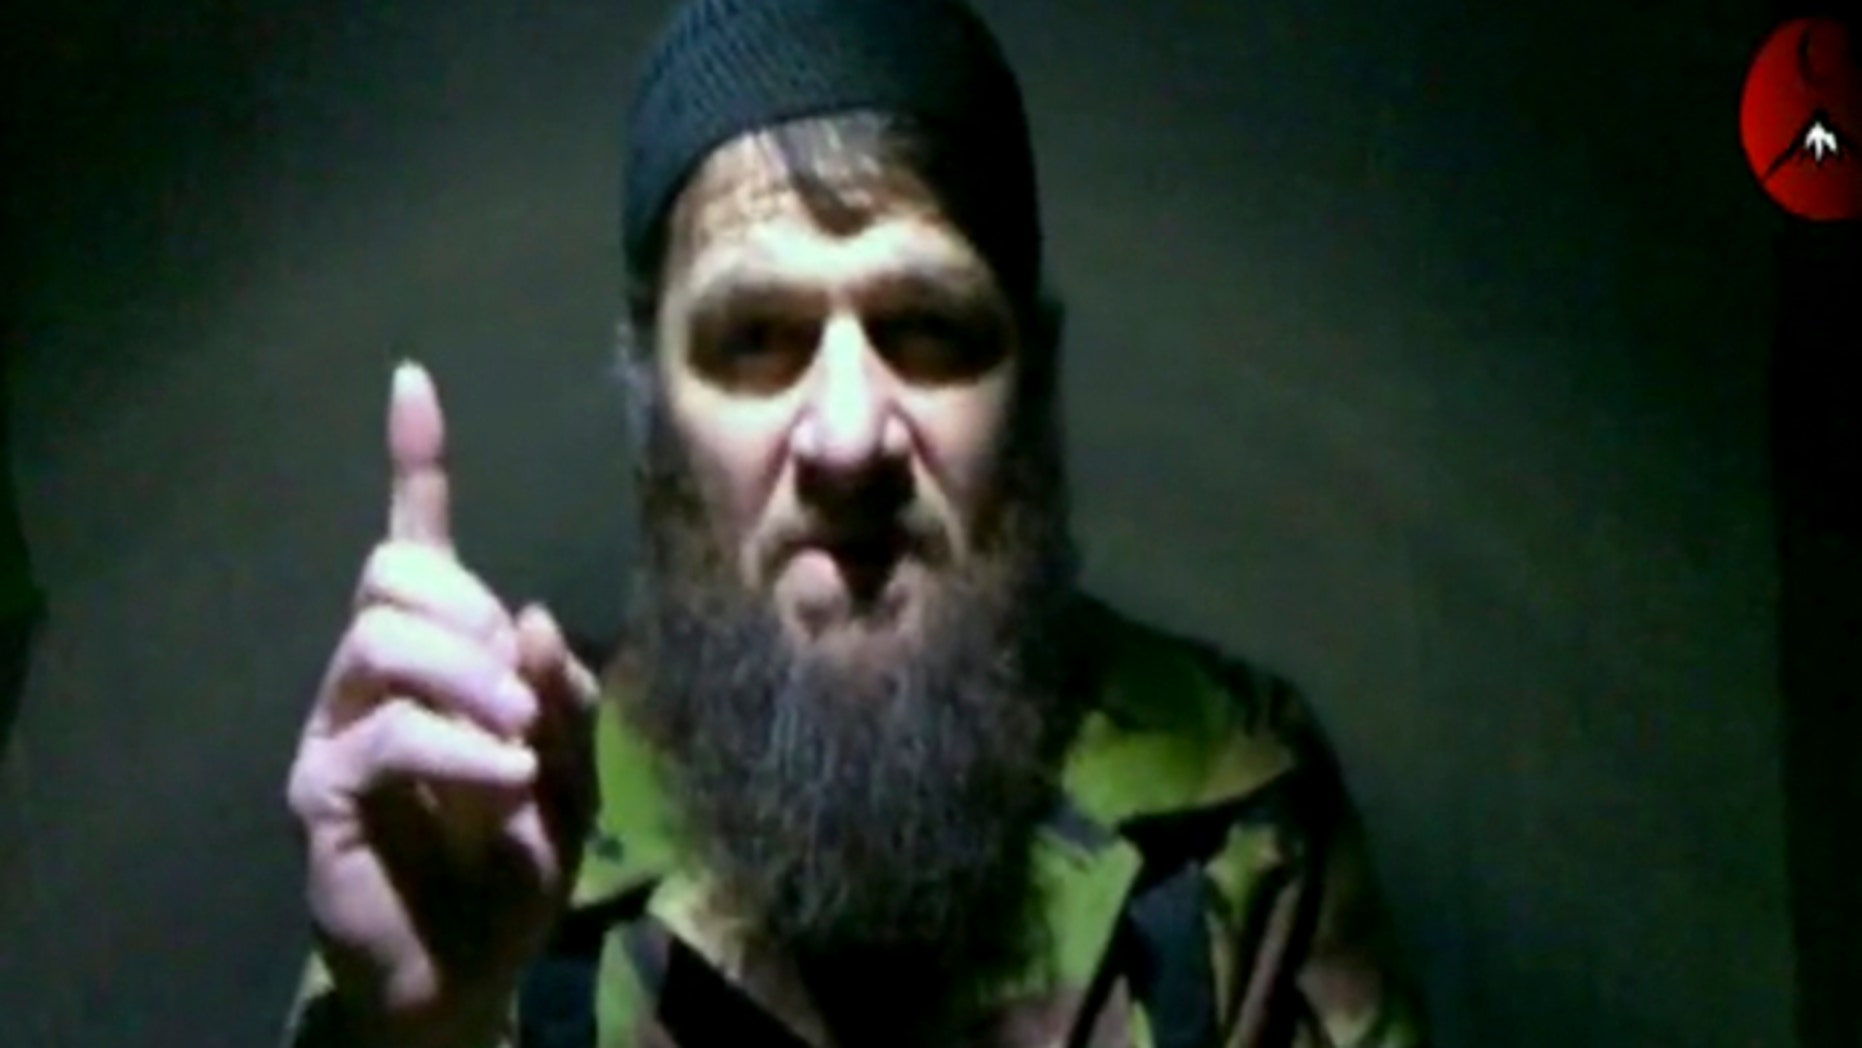 This image taken from video received late Monday, Feb. 7, 2011 by The Kavkaz Center, a website affiliated with Chechen rebels, shows insurgent leader Doku Umarov speaking in a video in which he claims responsibility for last month's deadly suicide bombing at Russia's largest airport.